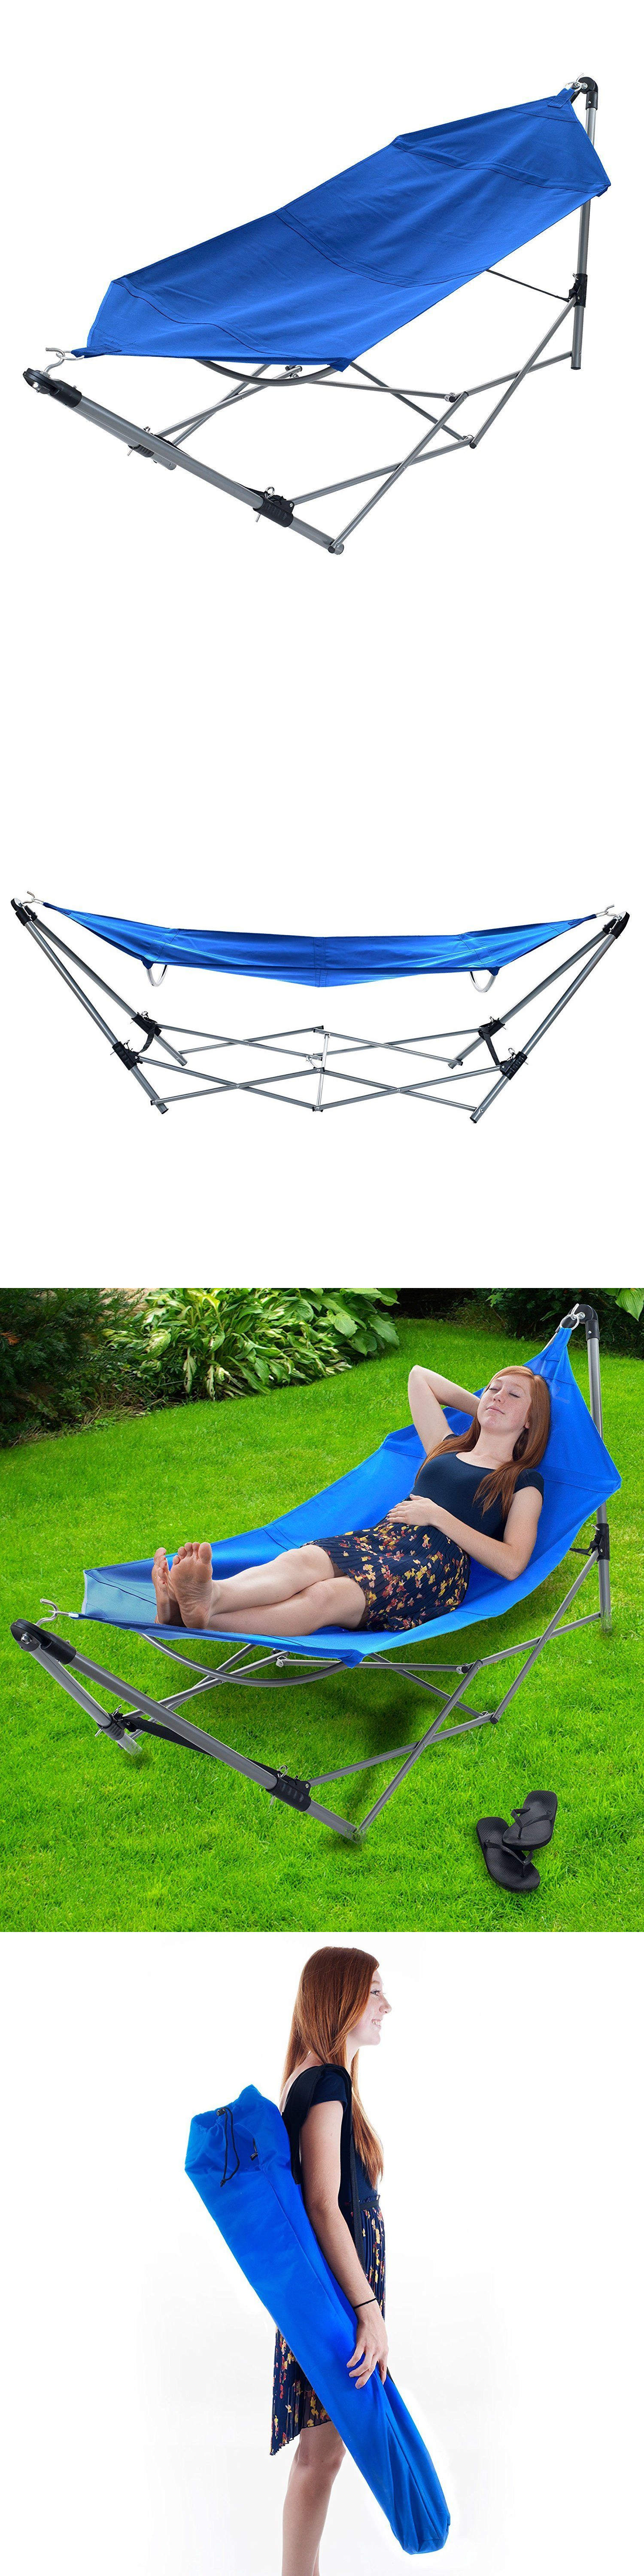 Hammocks stalwart portable hammock with frame stand and